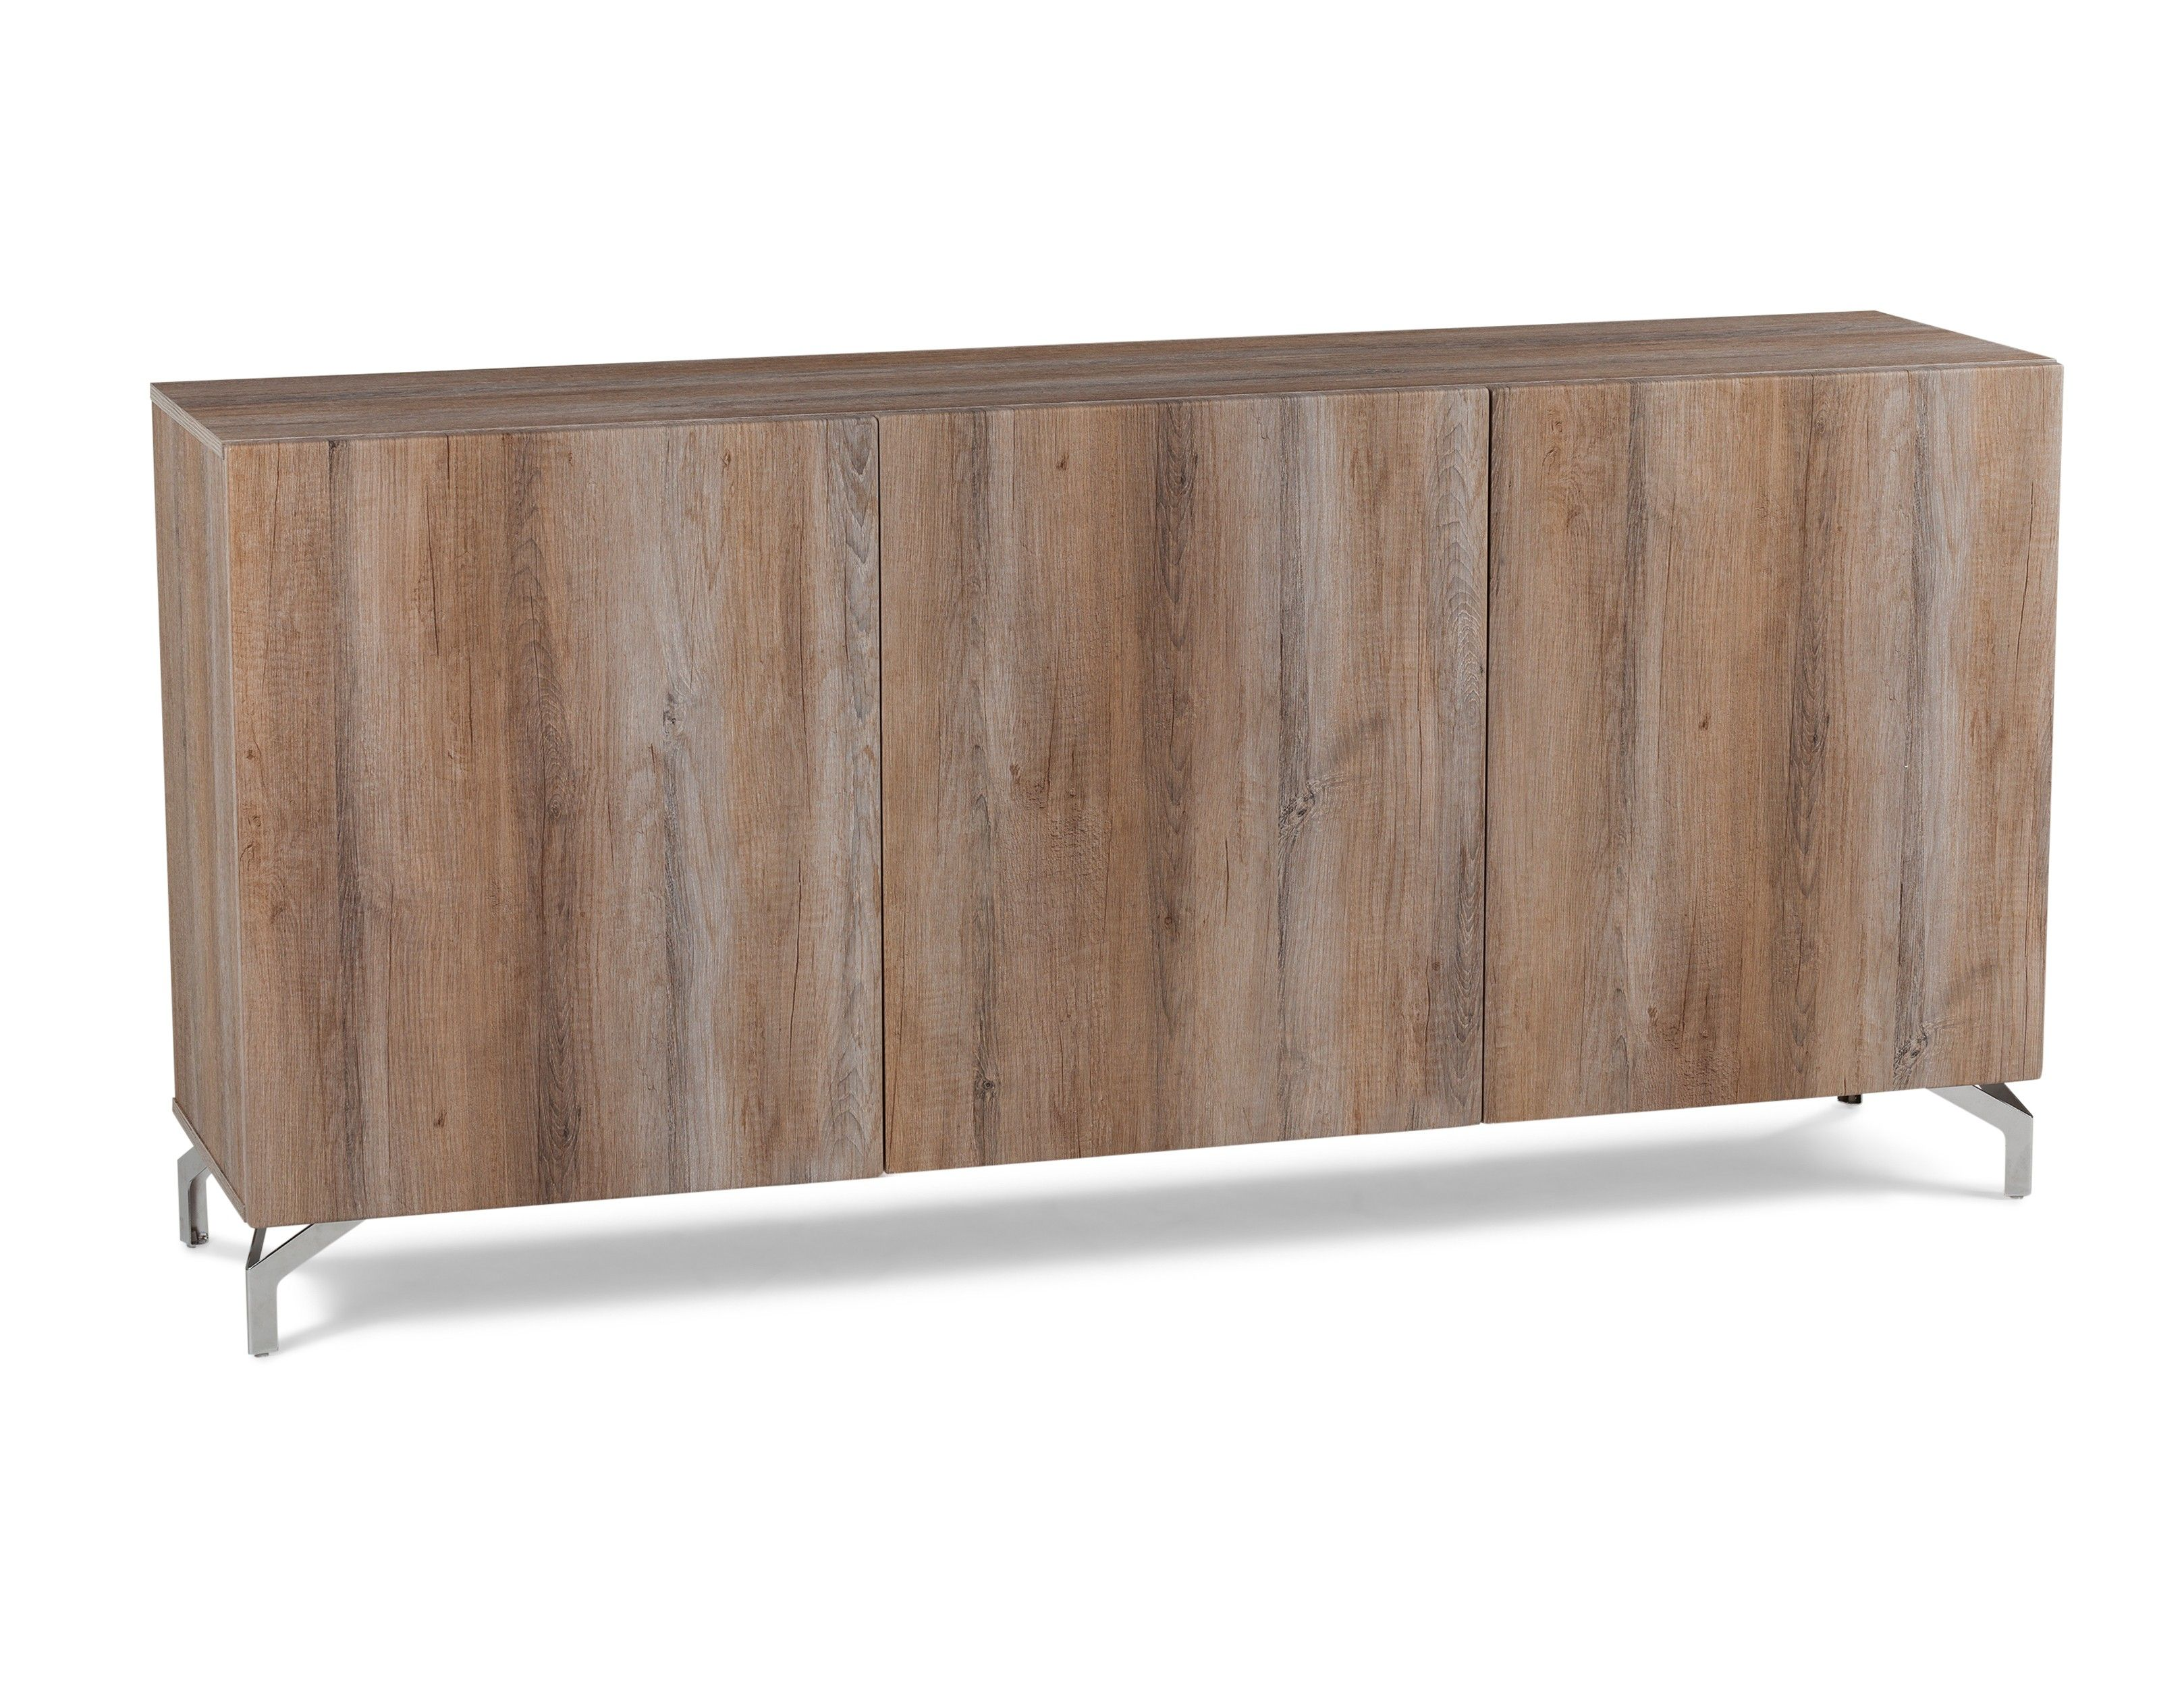 LUKA - 3-door sideboard - Coffee | Home | Sideboard, Modern ... Small Modern Sideboards And Credenzas on consoles and credenzas, made in usa modern credenzas, country style credenzas, modern sideboards with sliding door, modern sideboards and hutches, industrial modern credenzas, post modern credenzas,